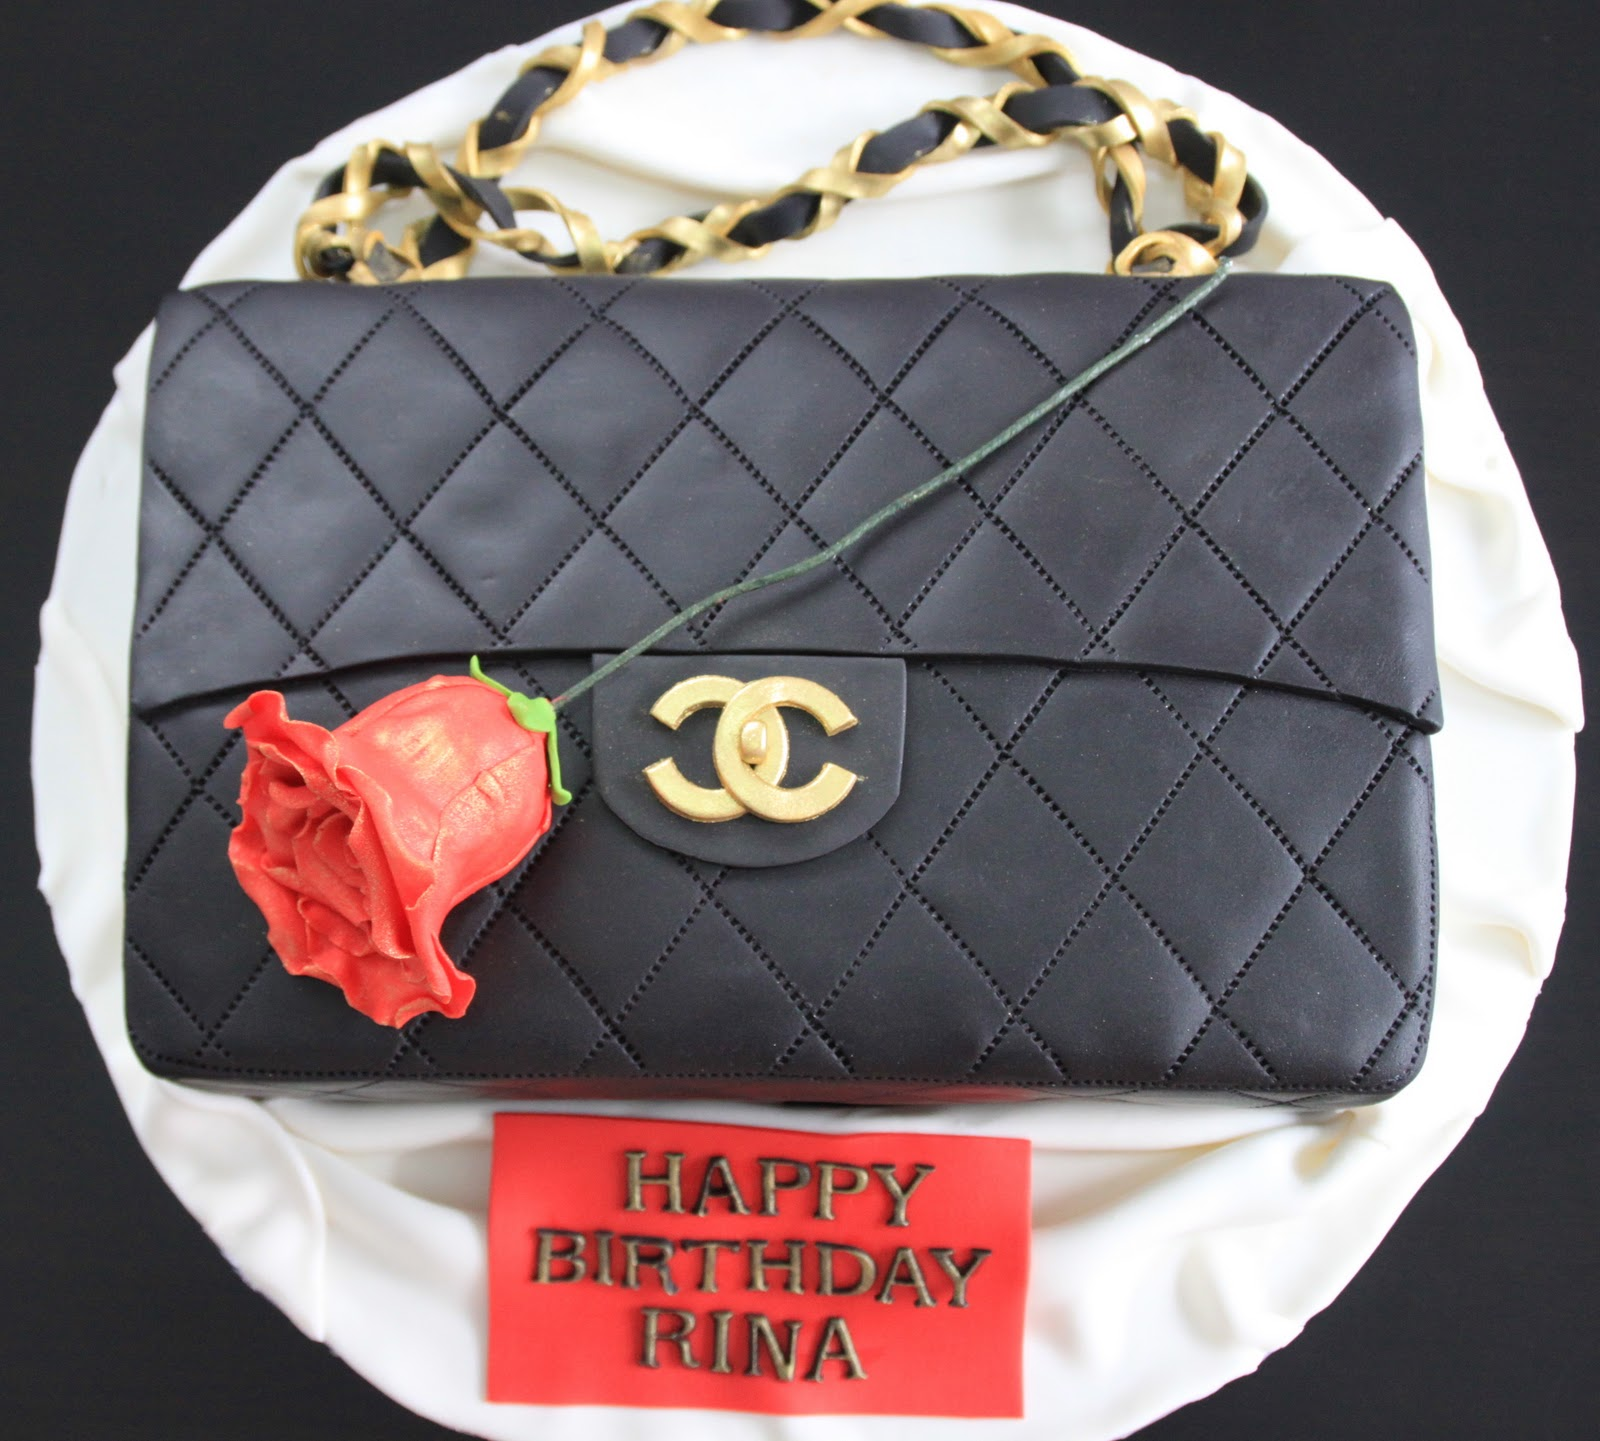 Chanel Bag Cake With Red Rose